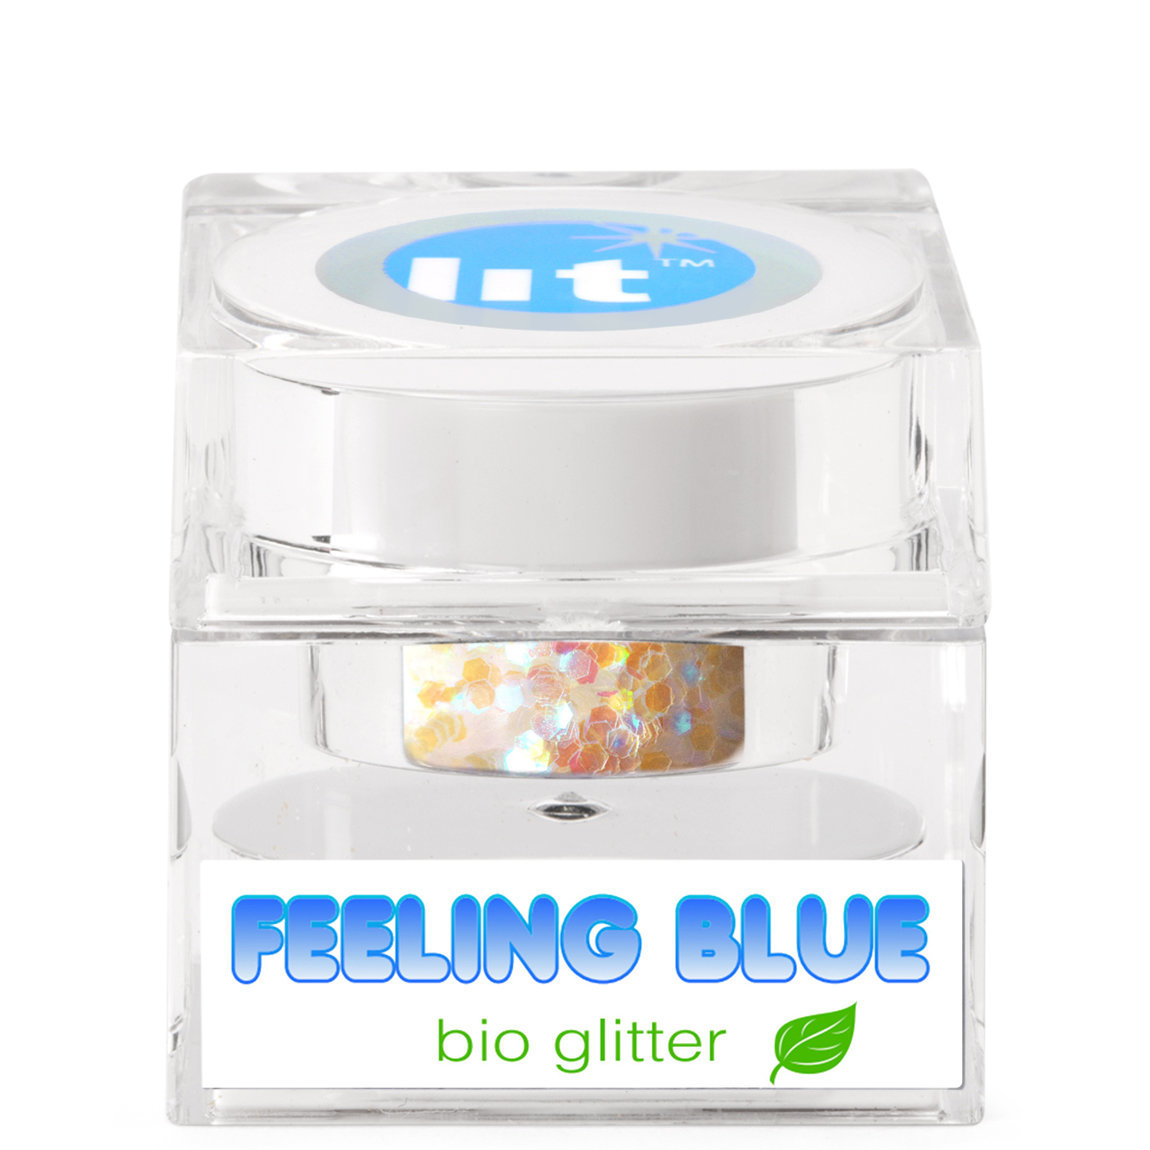 Lit Cosmetics Bio Glitter Feeling Blue alternative view 1.